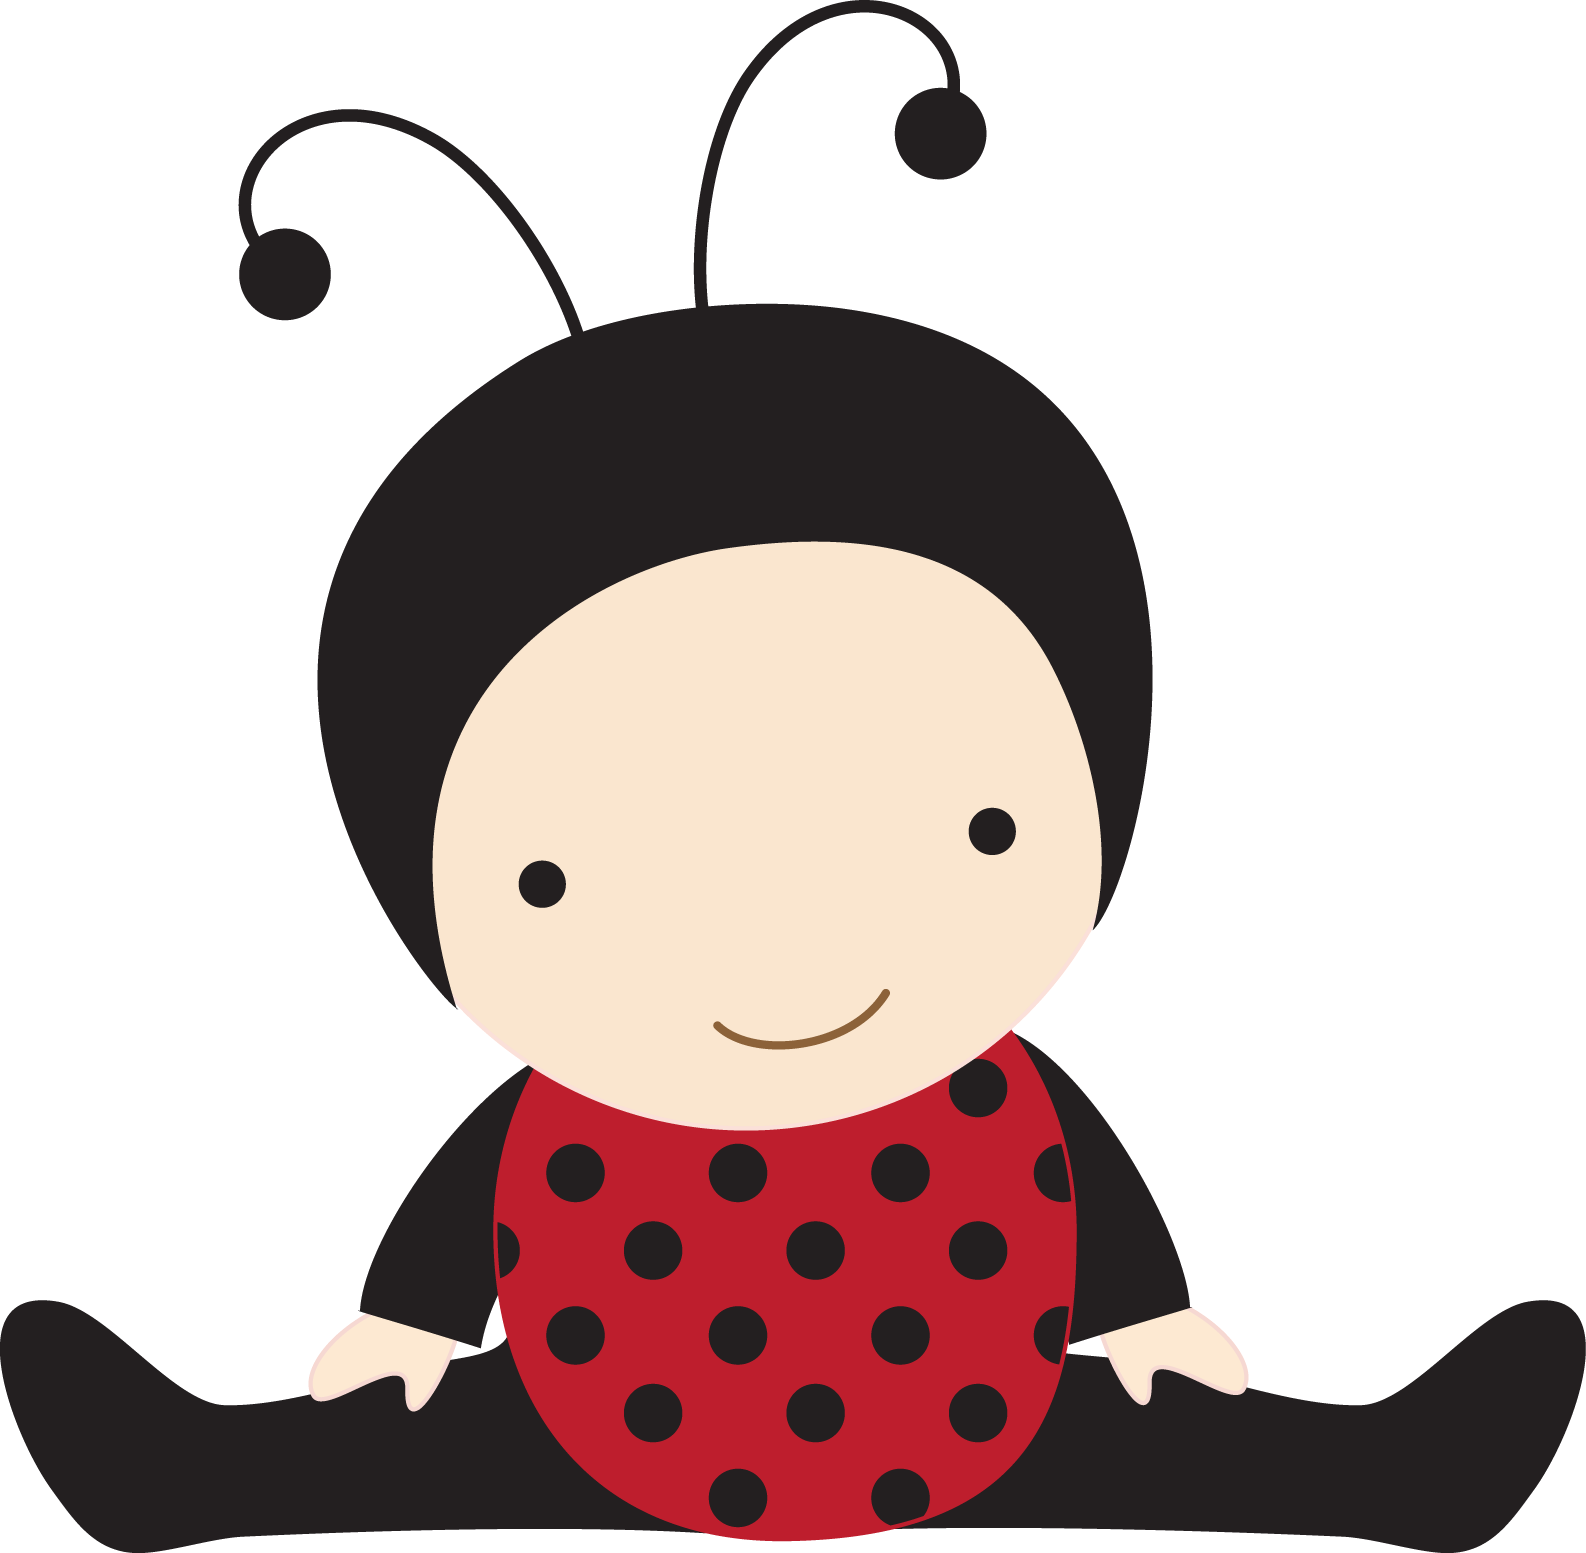 Ladybug clipart baby girl.  collection of high